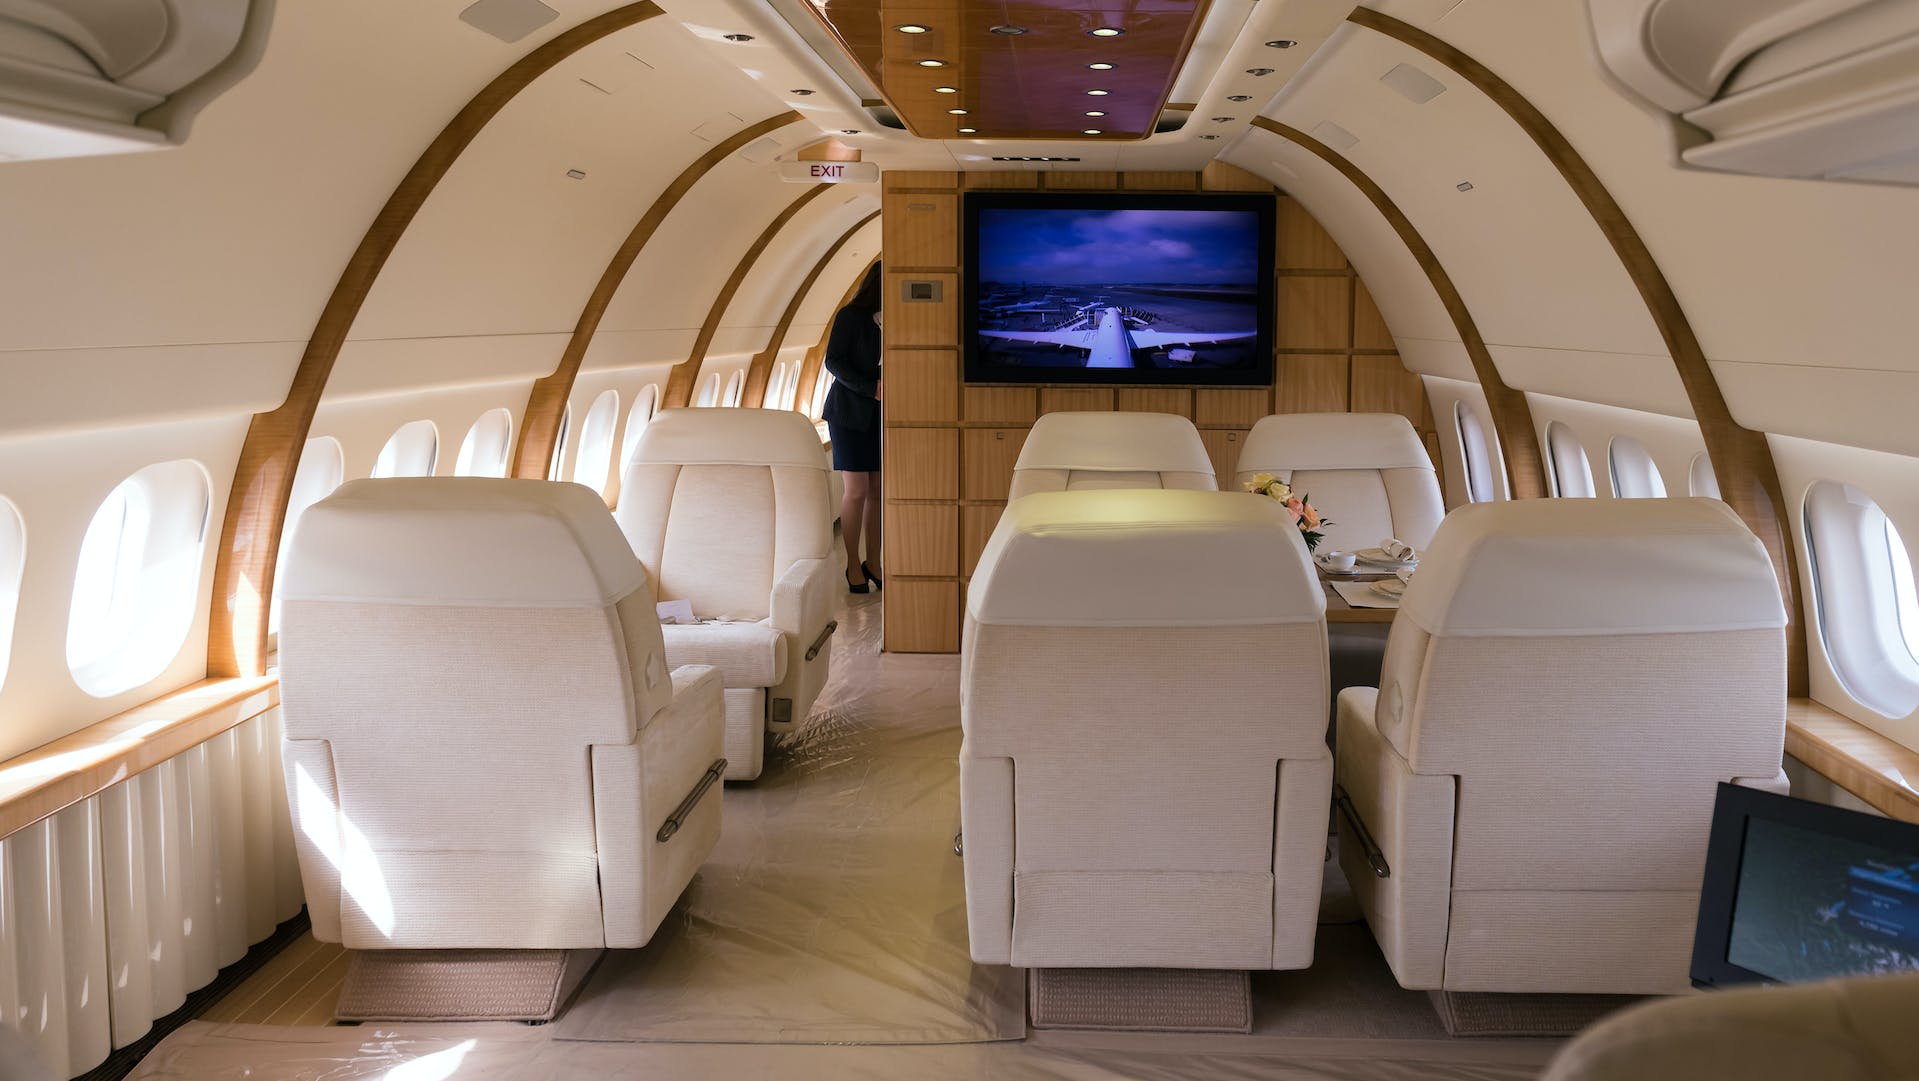 Create the space you need when you book your private group charter flight with LunaGroupCharter.